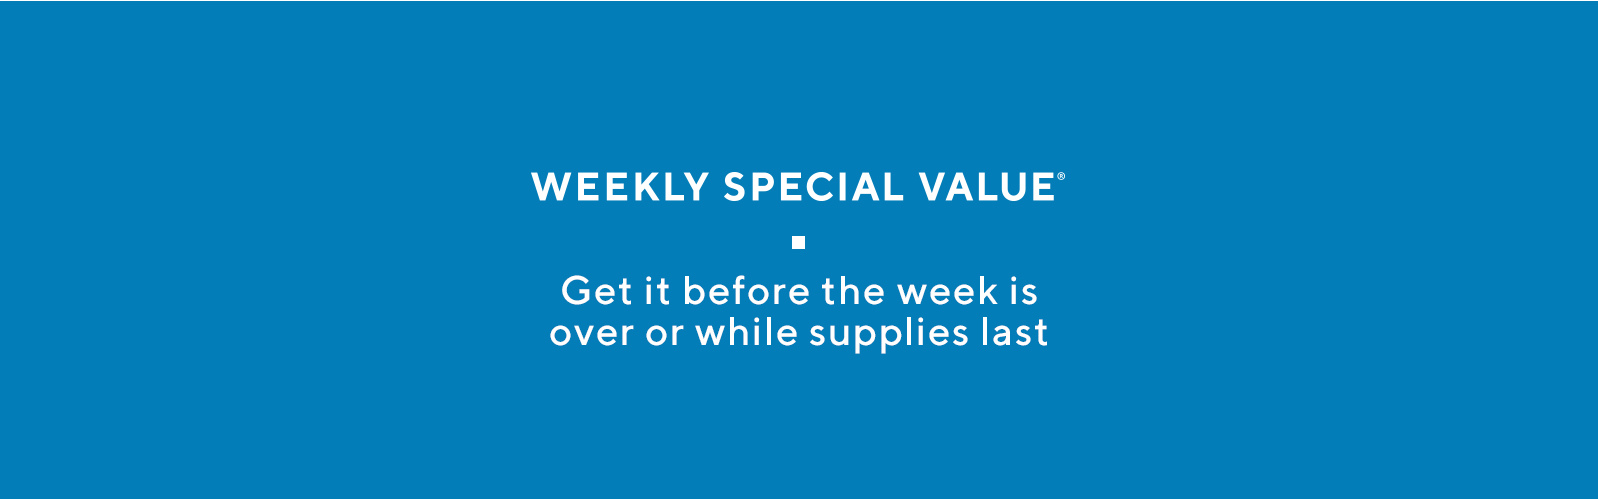 Weekly Special Value®.  Get it before the week is over or while supplies last.